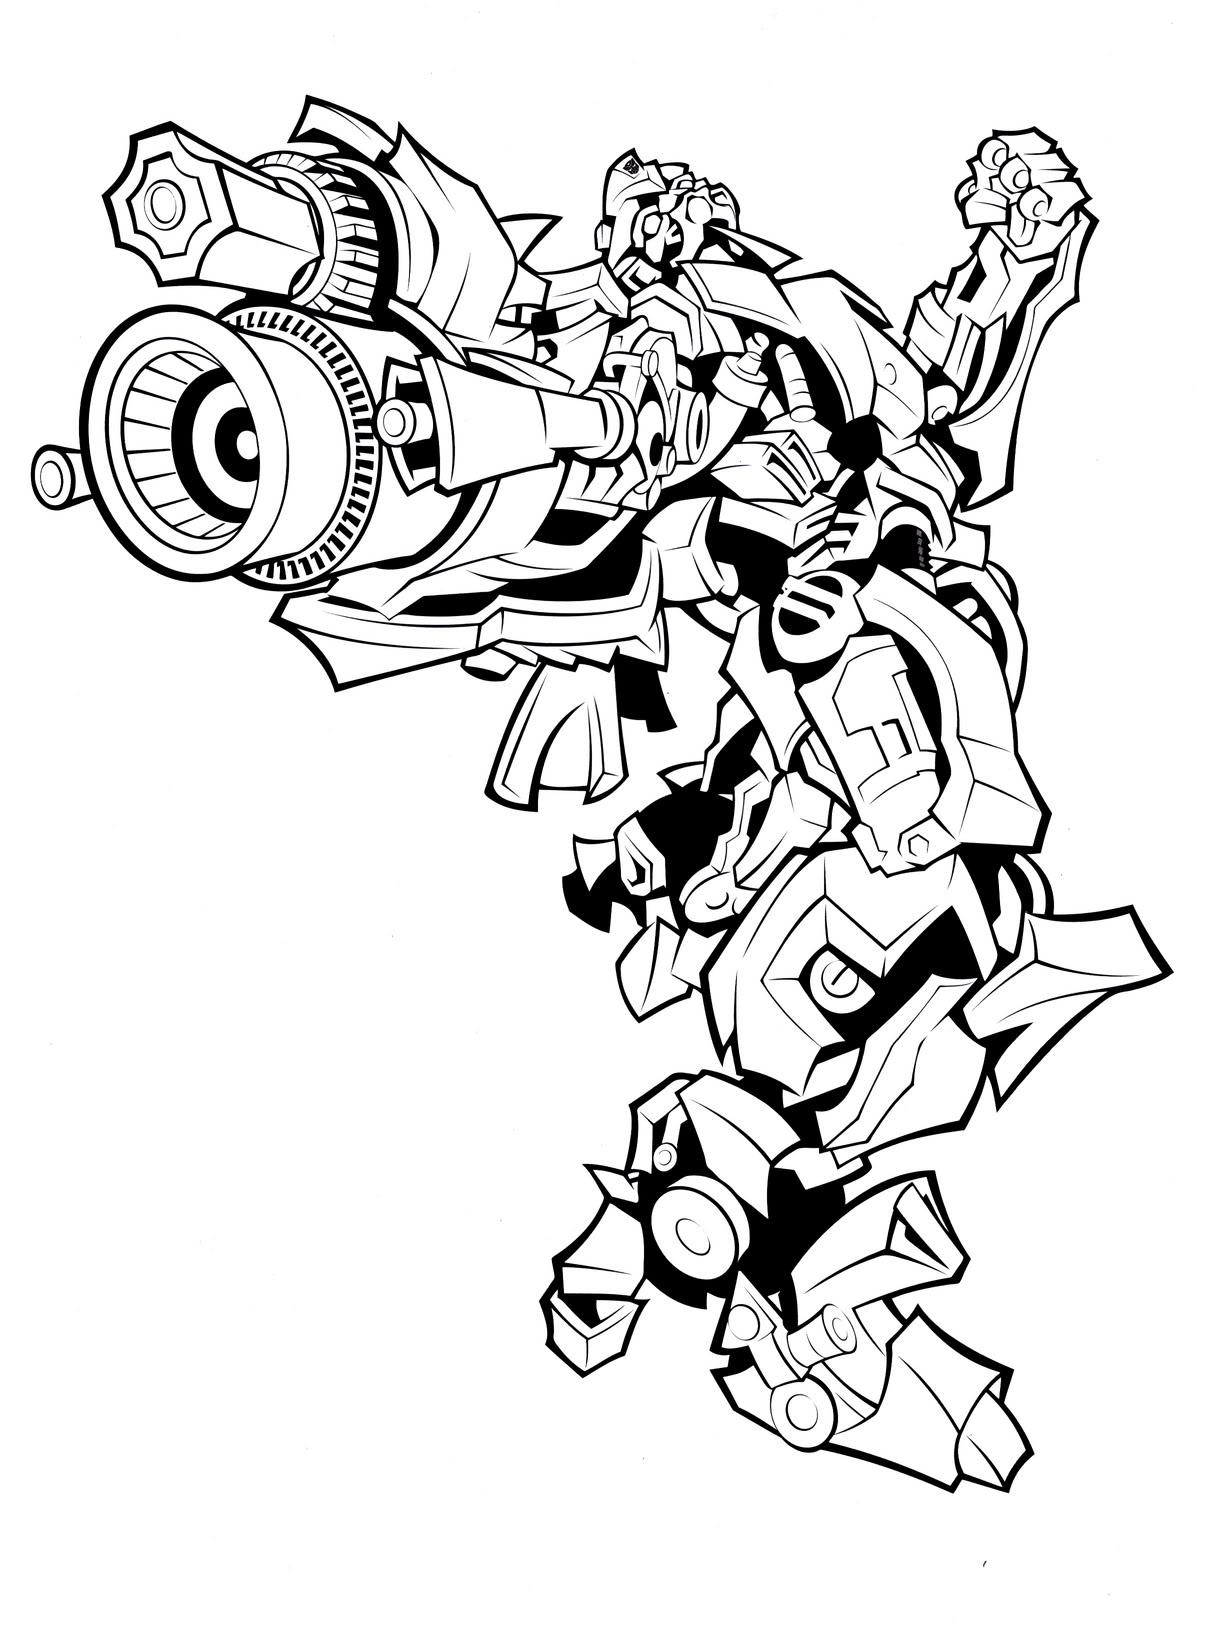 Bumblebee Coloring Pages To Download And Print For Free